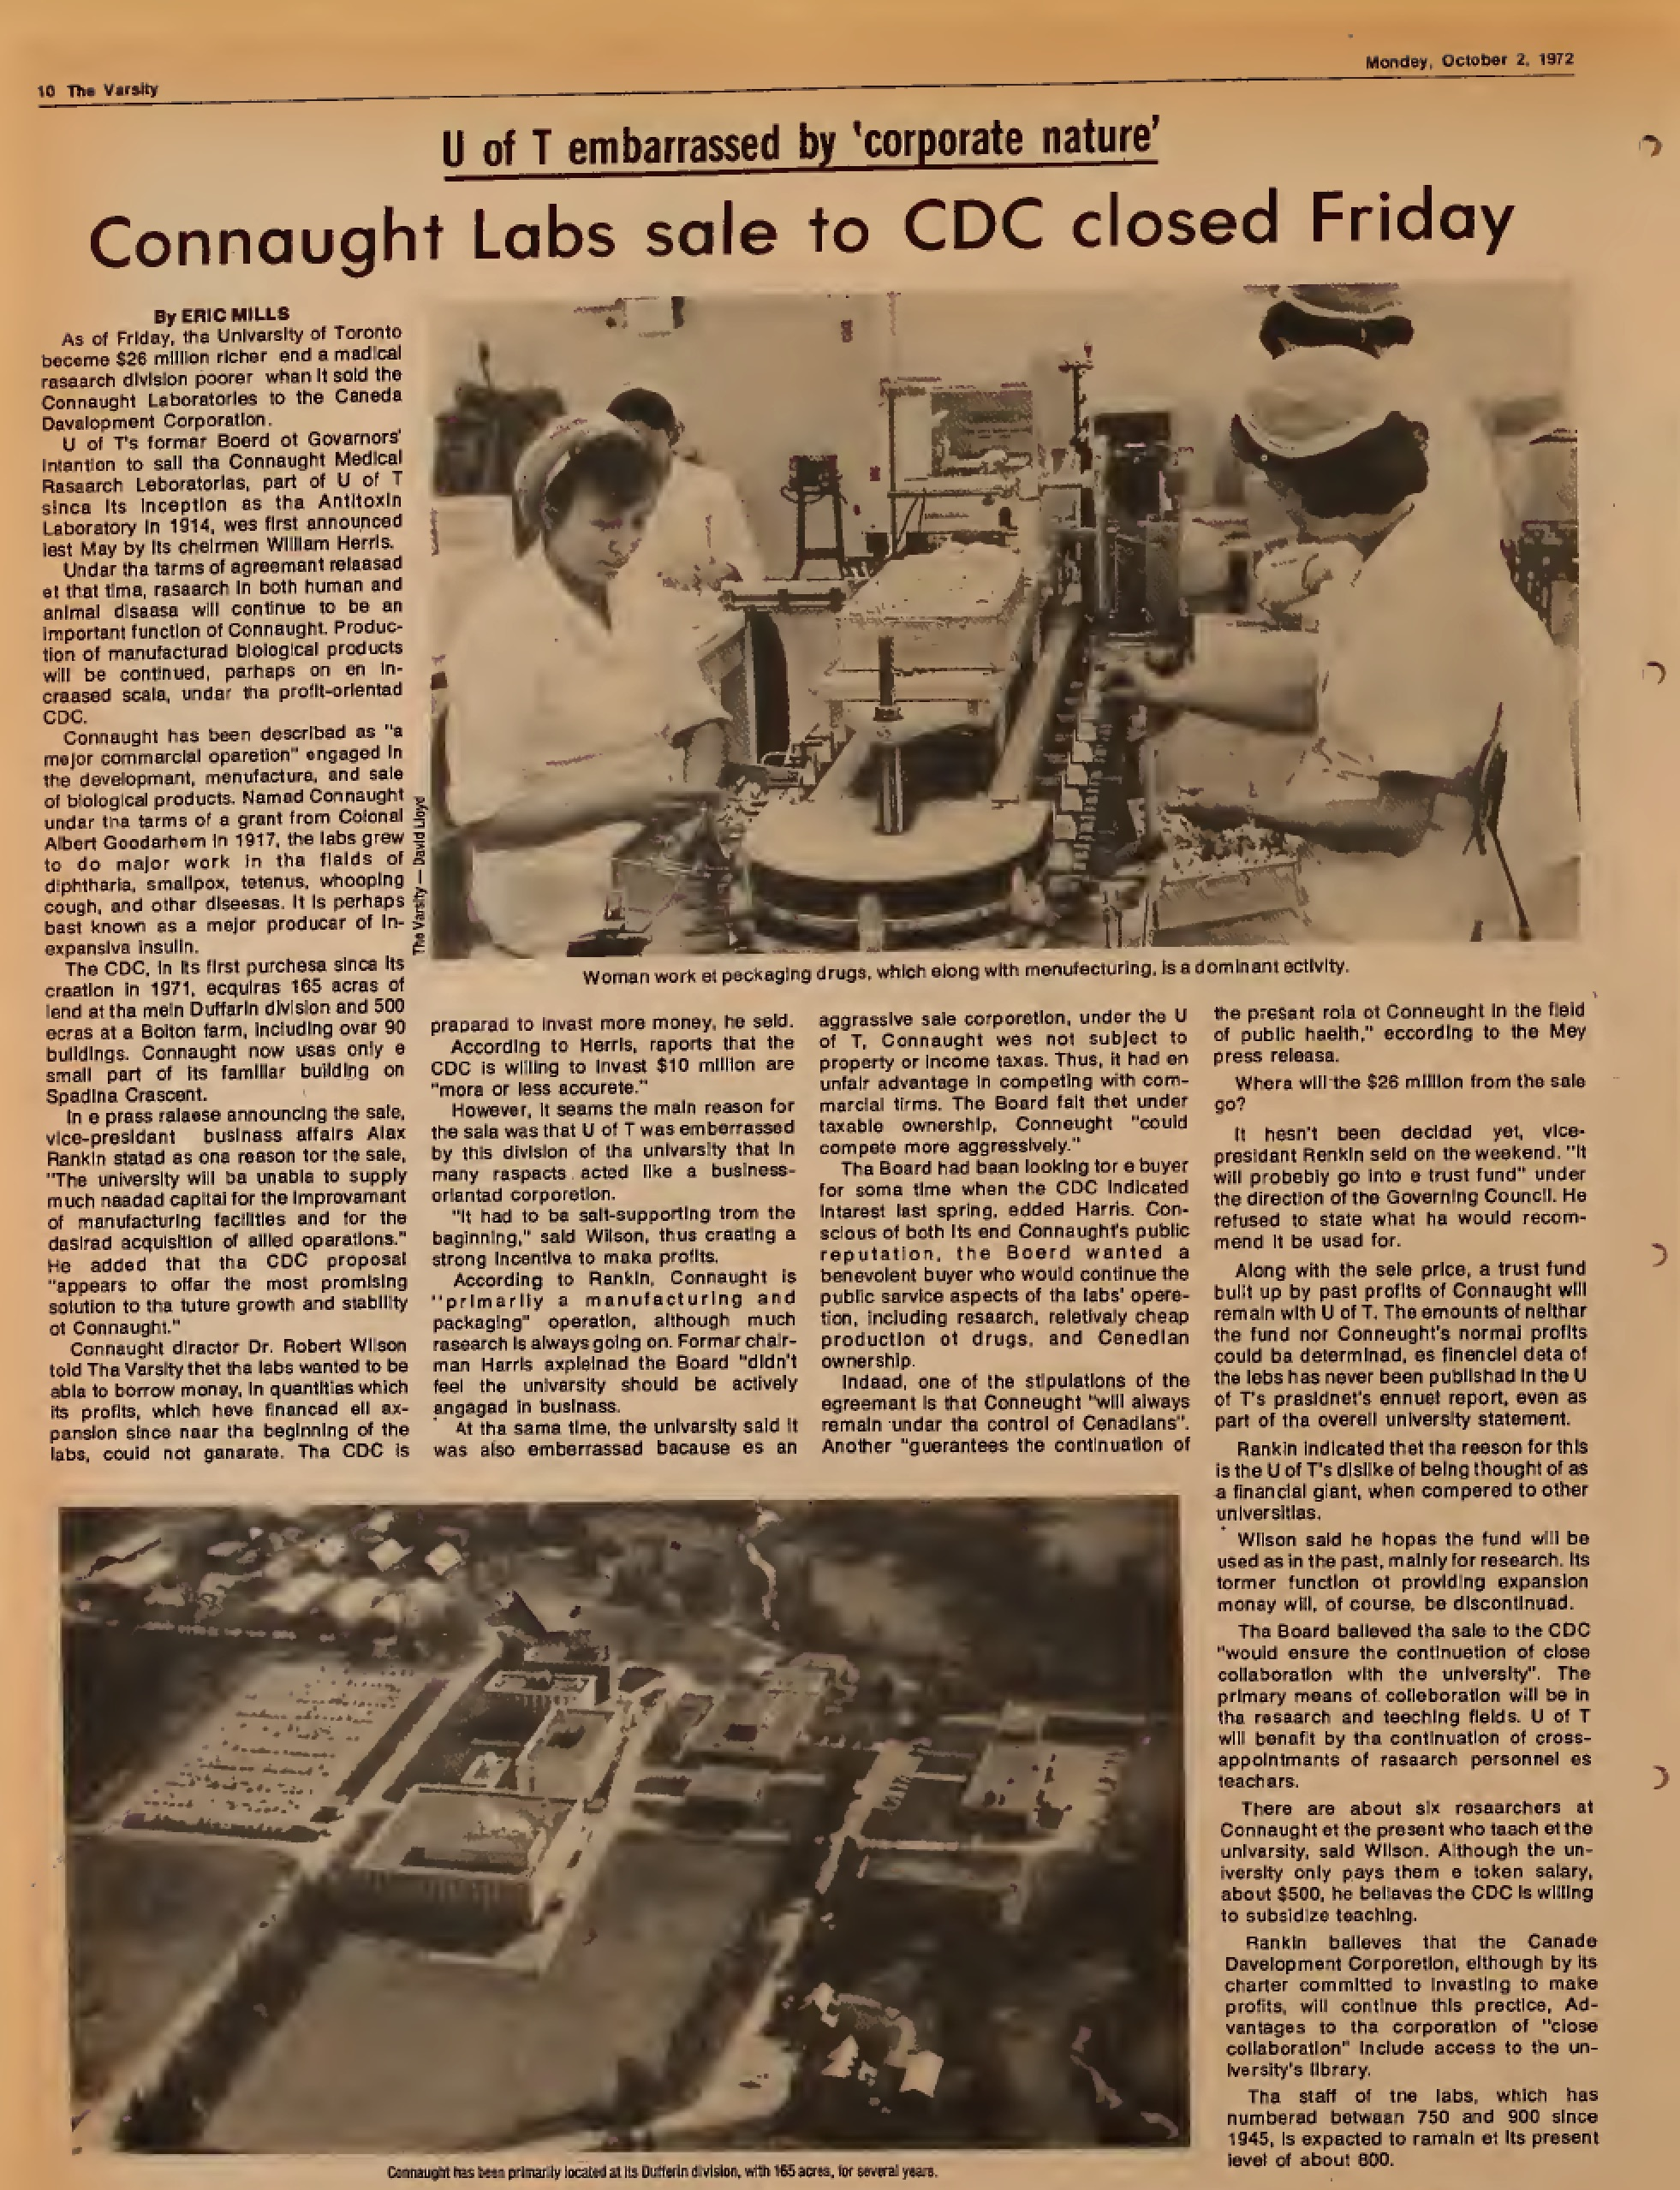 Article from the October 2, 1972 edition of The Varsity, the University of Toronto student newspaper, announcing that the University's sale of Connaught Laboratories to the Canada Development Corporation, for a sum of about $26 million, had closed.